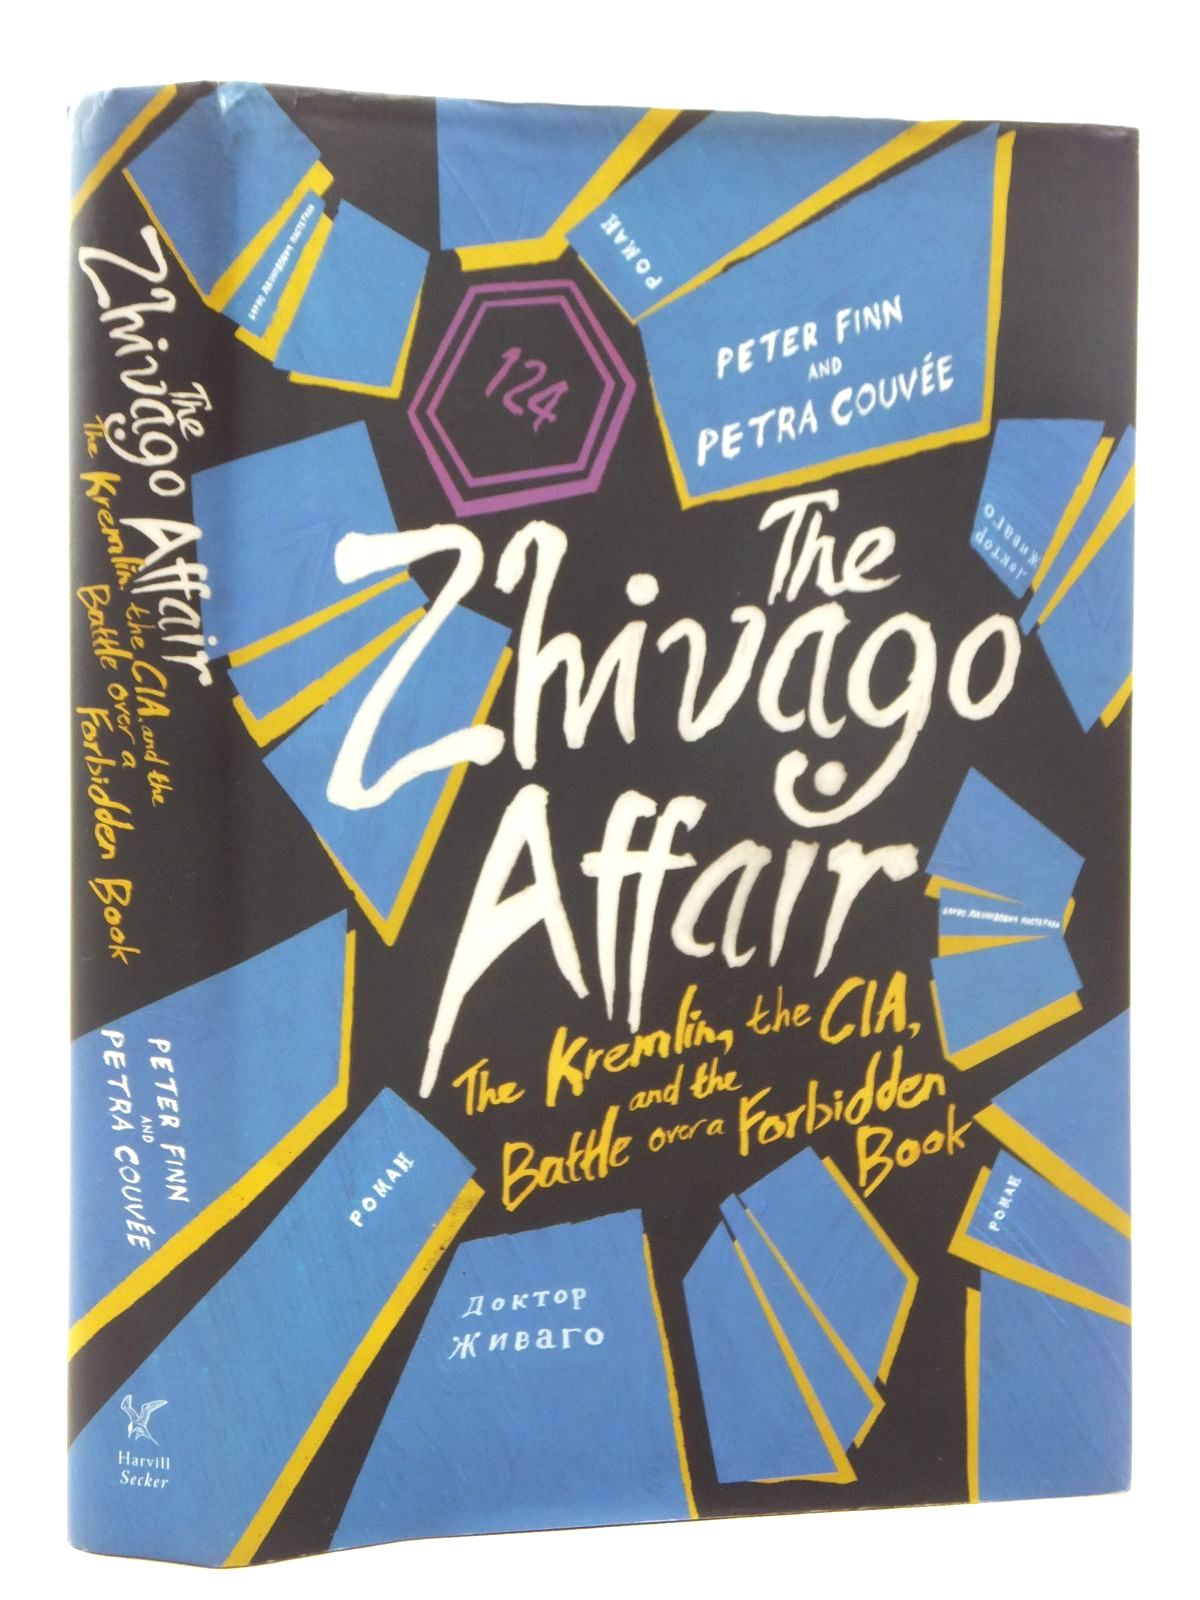 Photo of THE ZHIVAGO AFFAIR written by Finn, Peter<br />Couvee, Petra published by Harvill Secker (STOCK CODE: 1814840)  for sale by Stella & Rose's Books